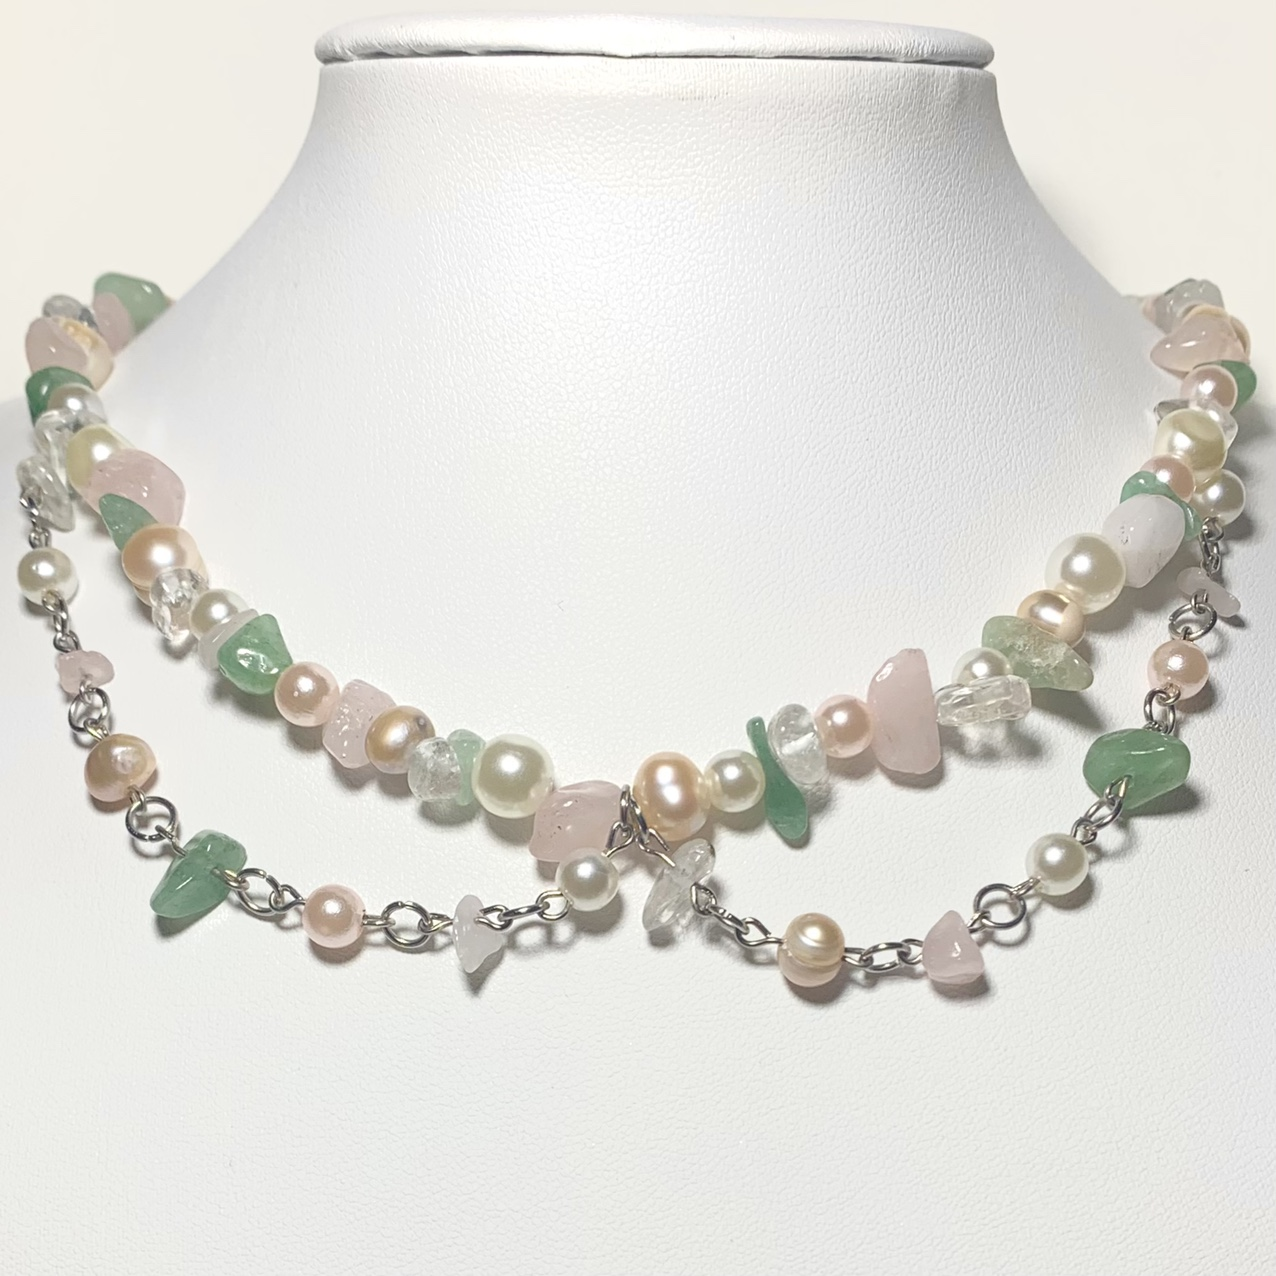 Product Image 1 - ˚✧₊ the cora pearl necklace